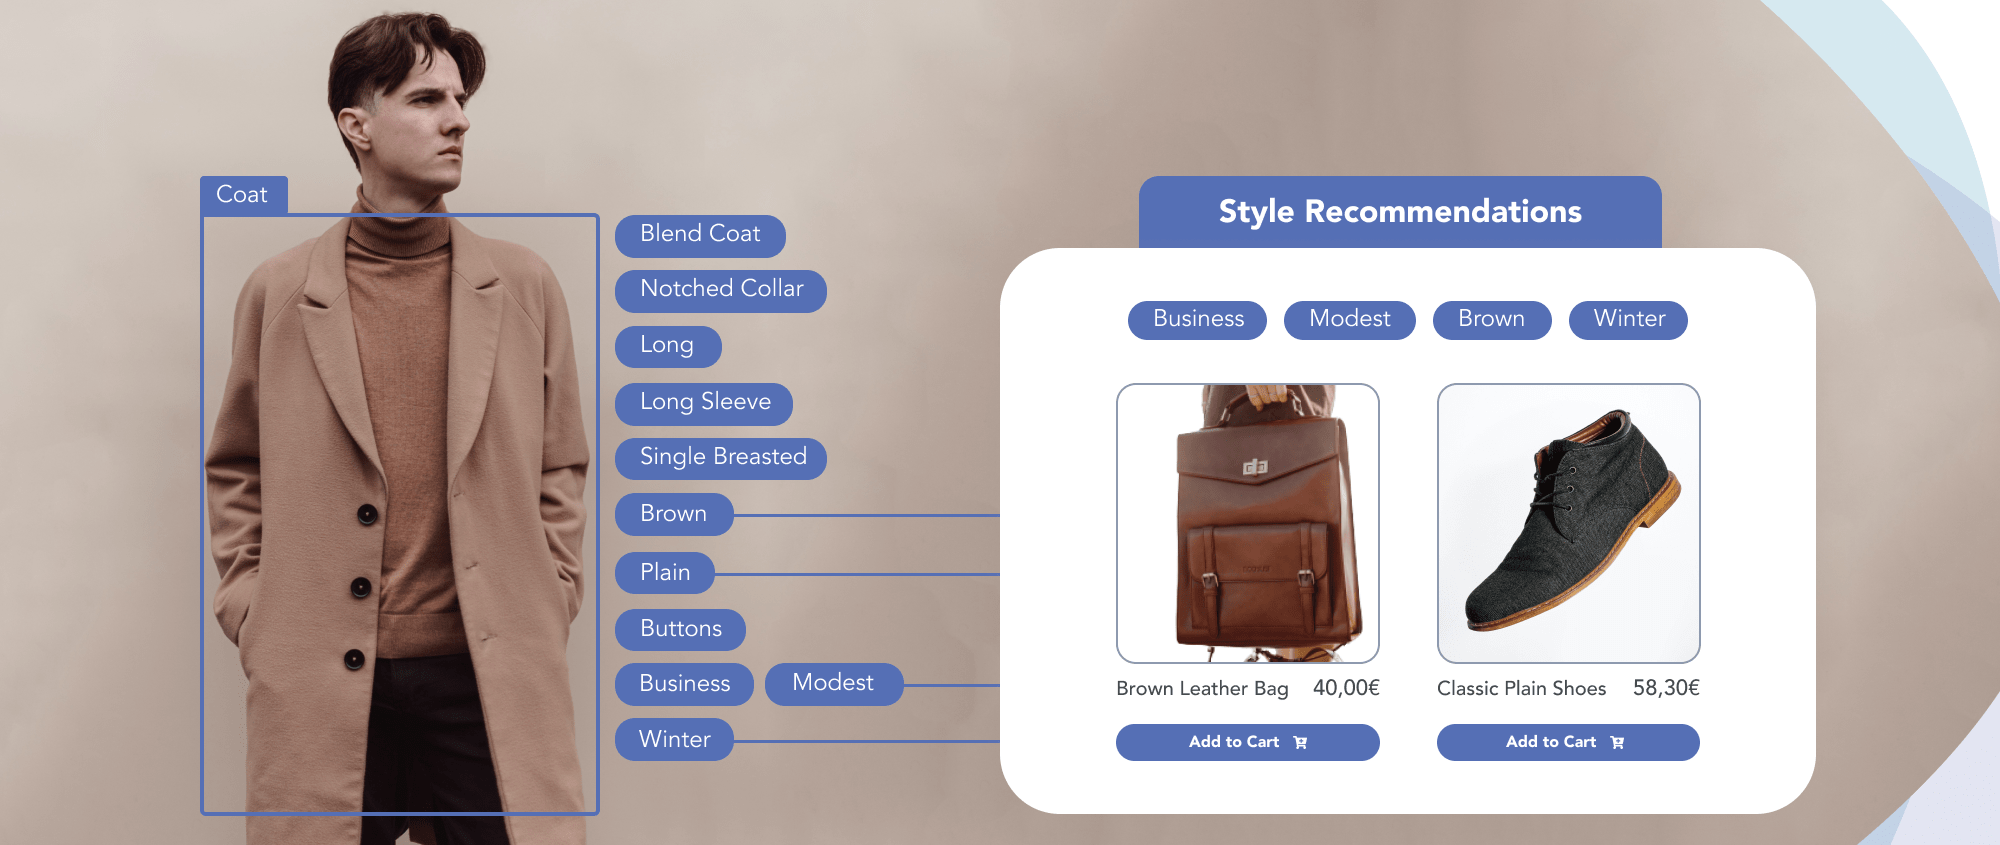 Descriptive tags for long sleeve brown coat, and recommendation brown leather bag and plain shoes to complete the style